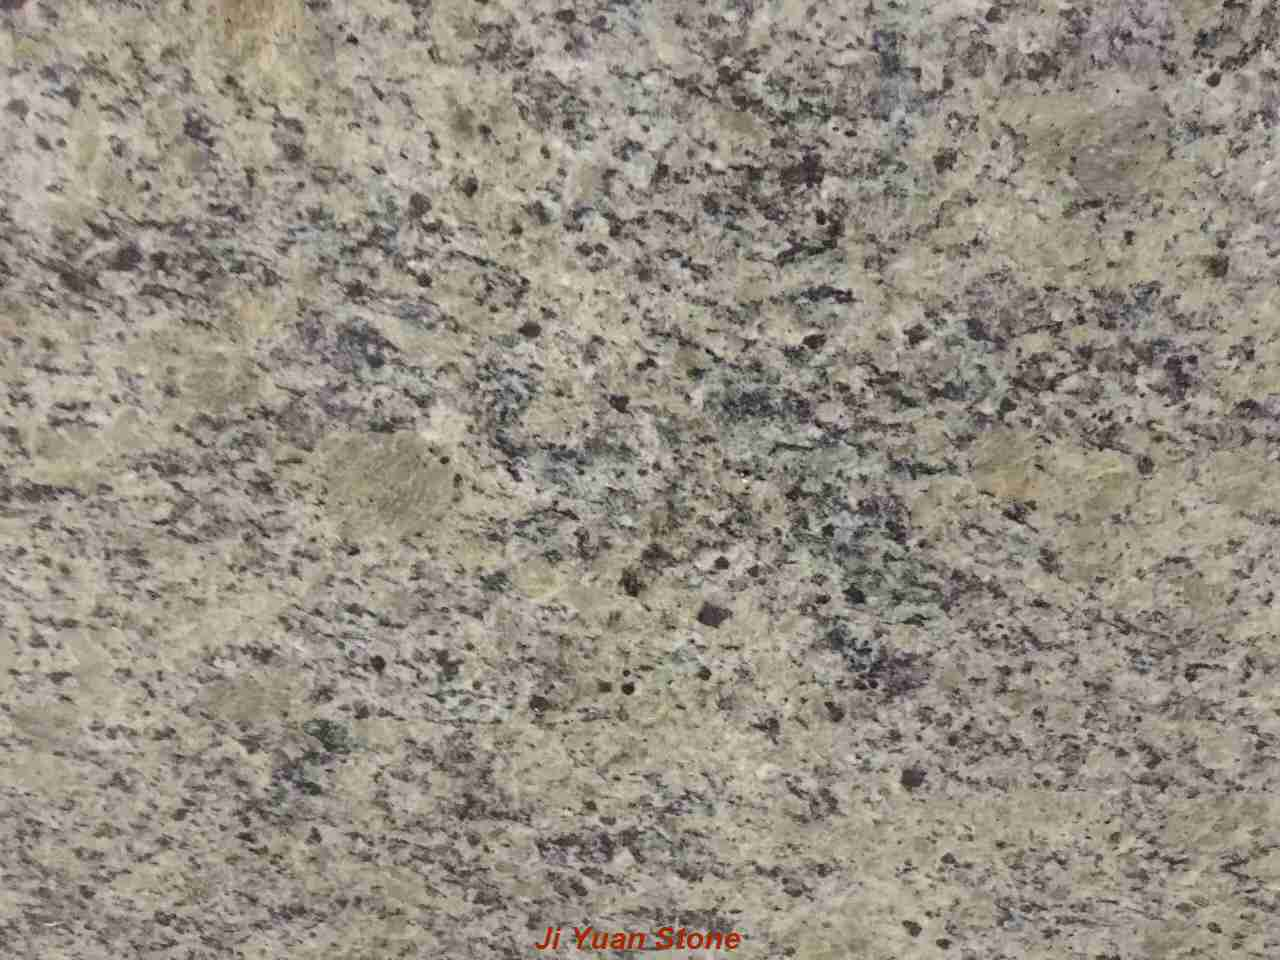 Santa cecilia granite backsplash,santa cecilia granite backsplash ideas,santa cecilia granite with white cabinets,santa cecelia,santa cecilia gold granite